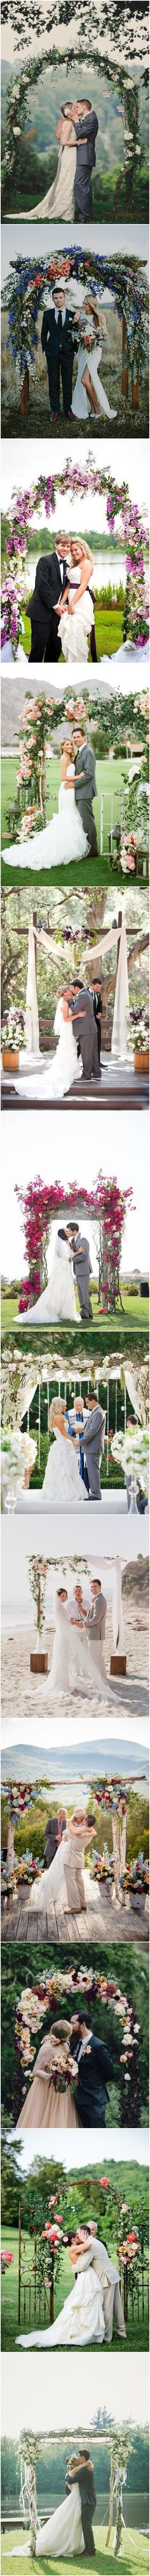 Rustic Wedding Ideas - 26 Floral Wedding Arches Decorating Ideas http://www.deerpearlflowers.com/26-floral-wedding-arches-decorating-ideas/: